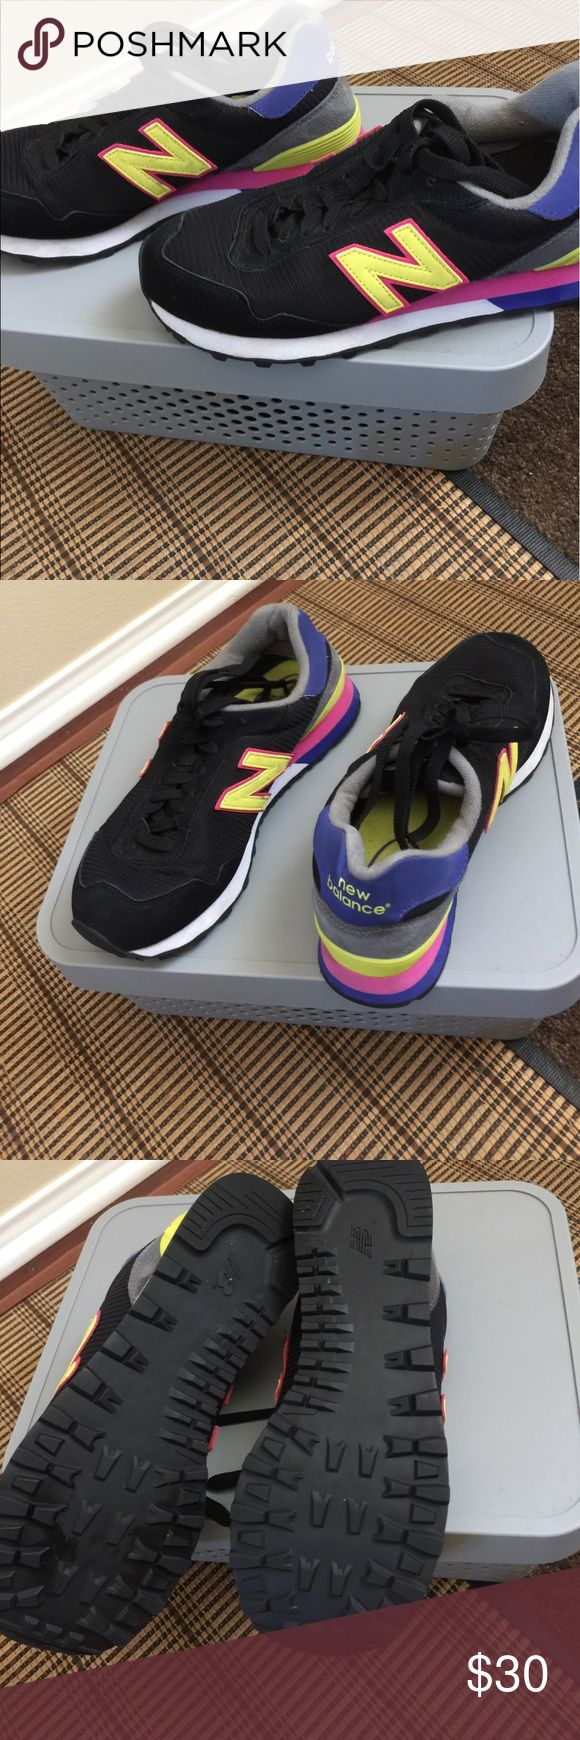 Ladies New balance-Sneakers retro looking Only wore once ladies  very rare new Balance sneakers very retro looking  size 7  color black base with pink yellow  purple accents strip New Balance Shoes Sneakers